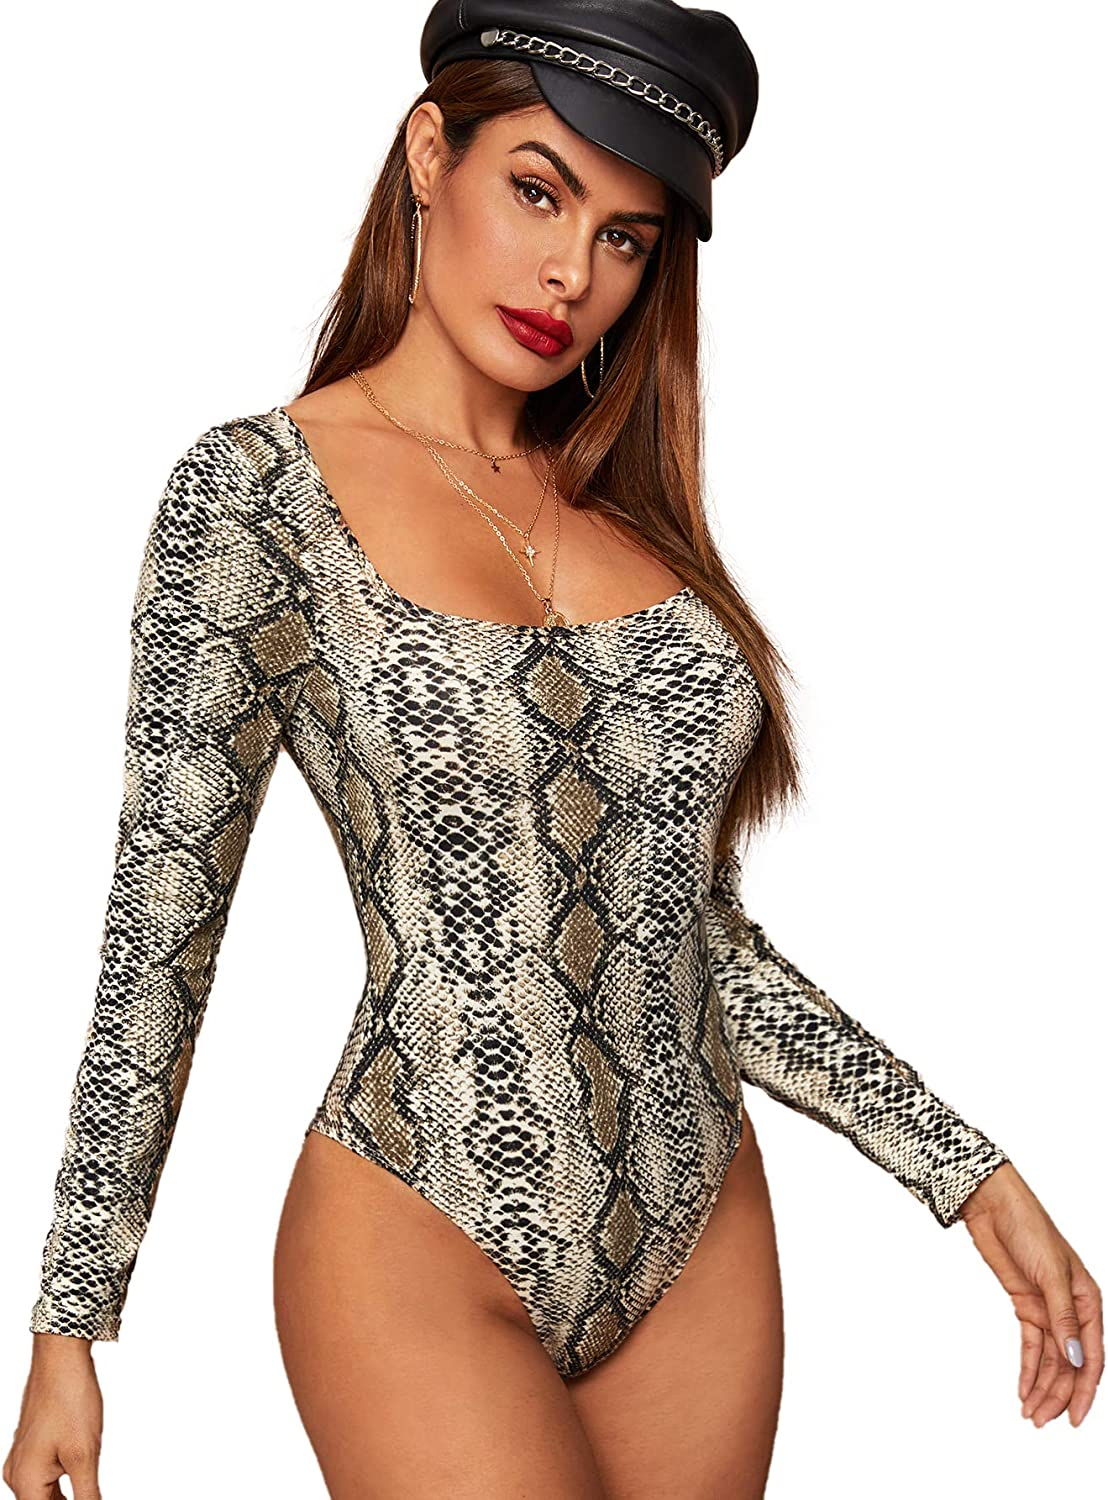 SOLY HUX Womens High Neck High Cut Solid Fitted Long Sleeve Skinny Bodysuit